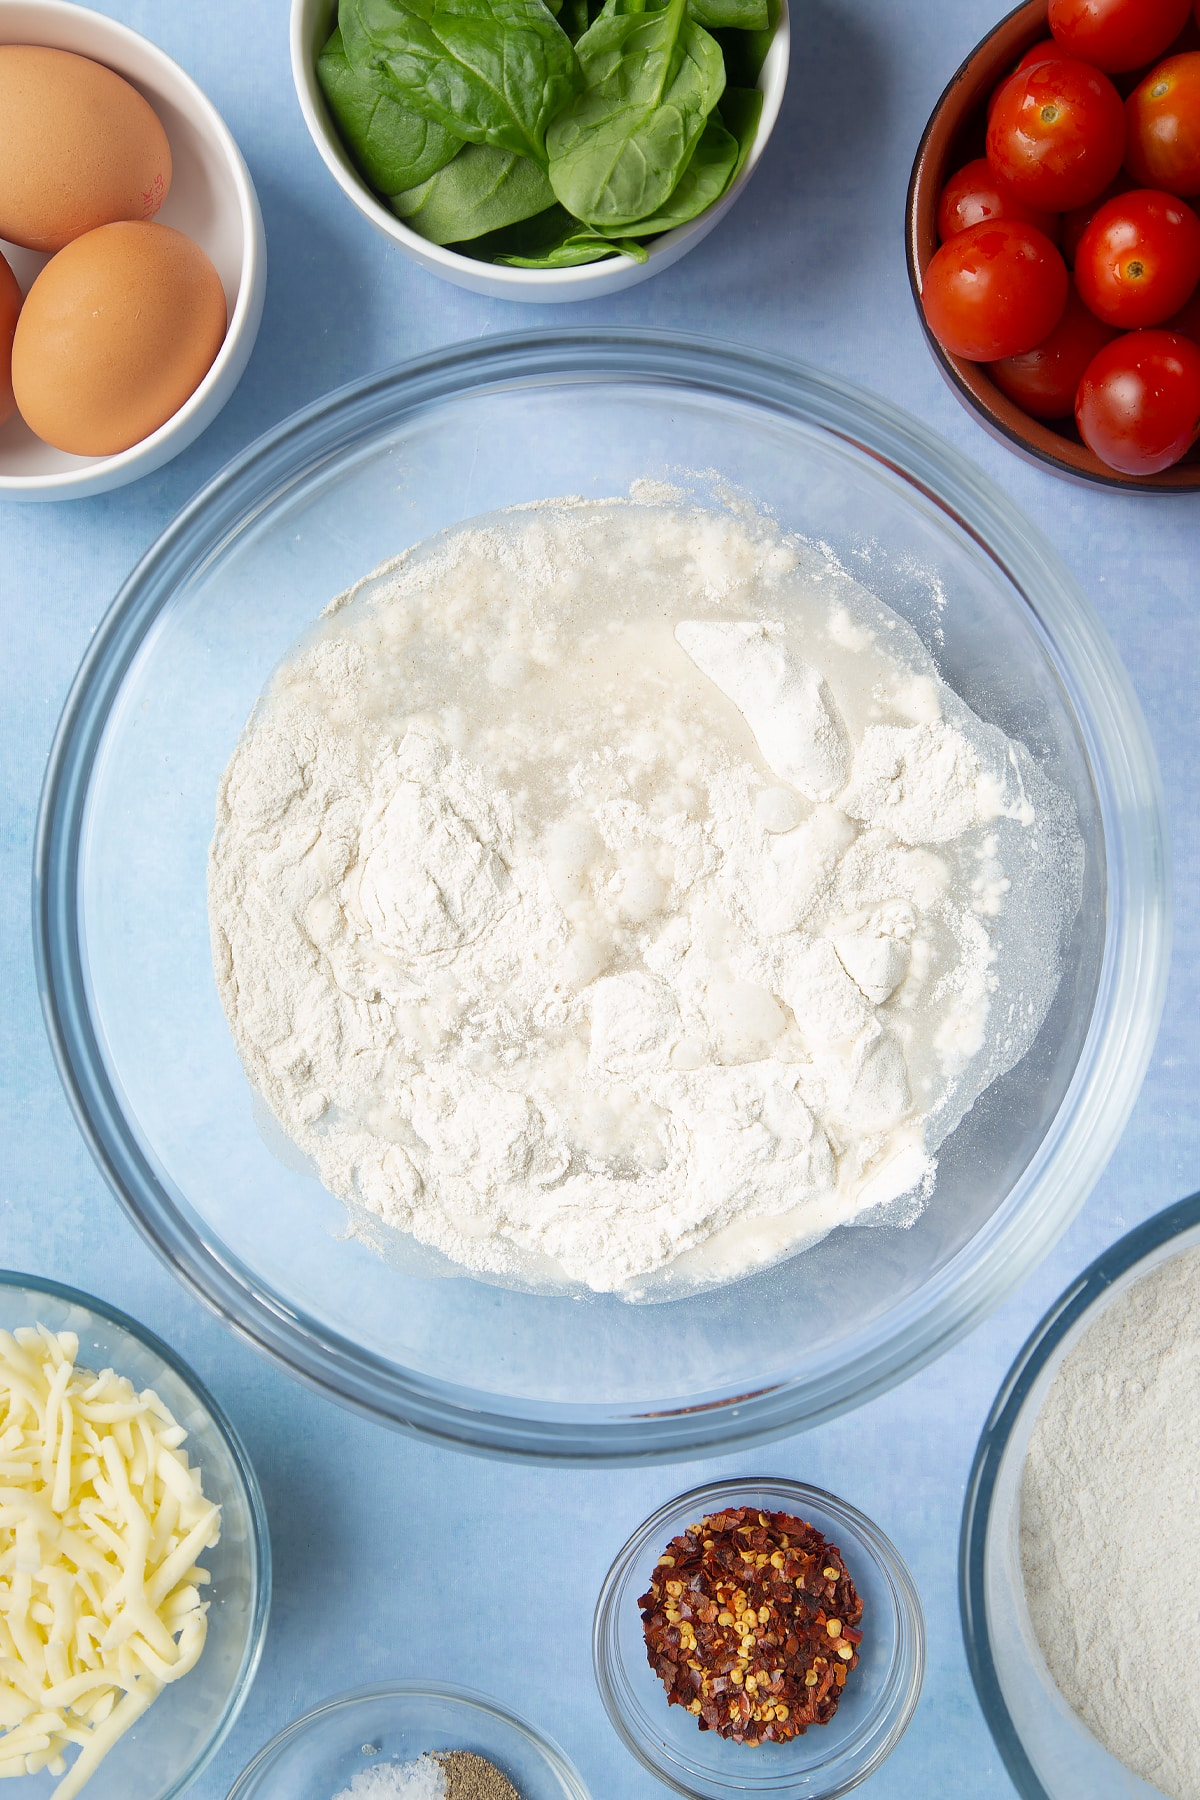 Buckwheat flour and water in a glass mixing bowl. Ingredients to make buckwheat galettes surround the bowl.